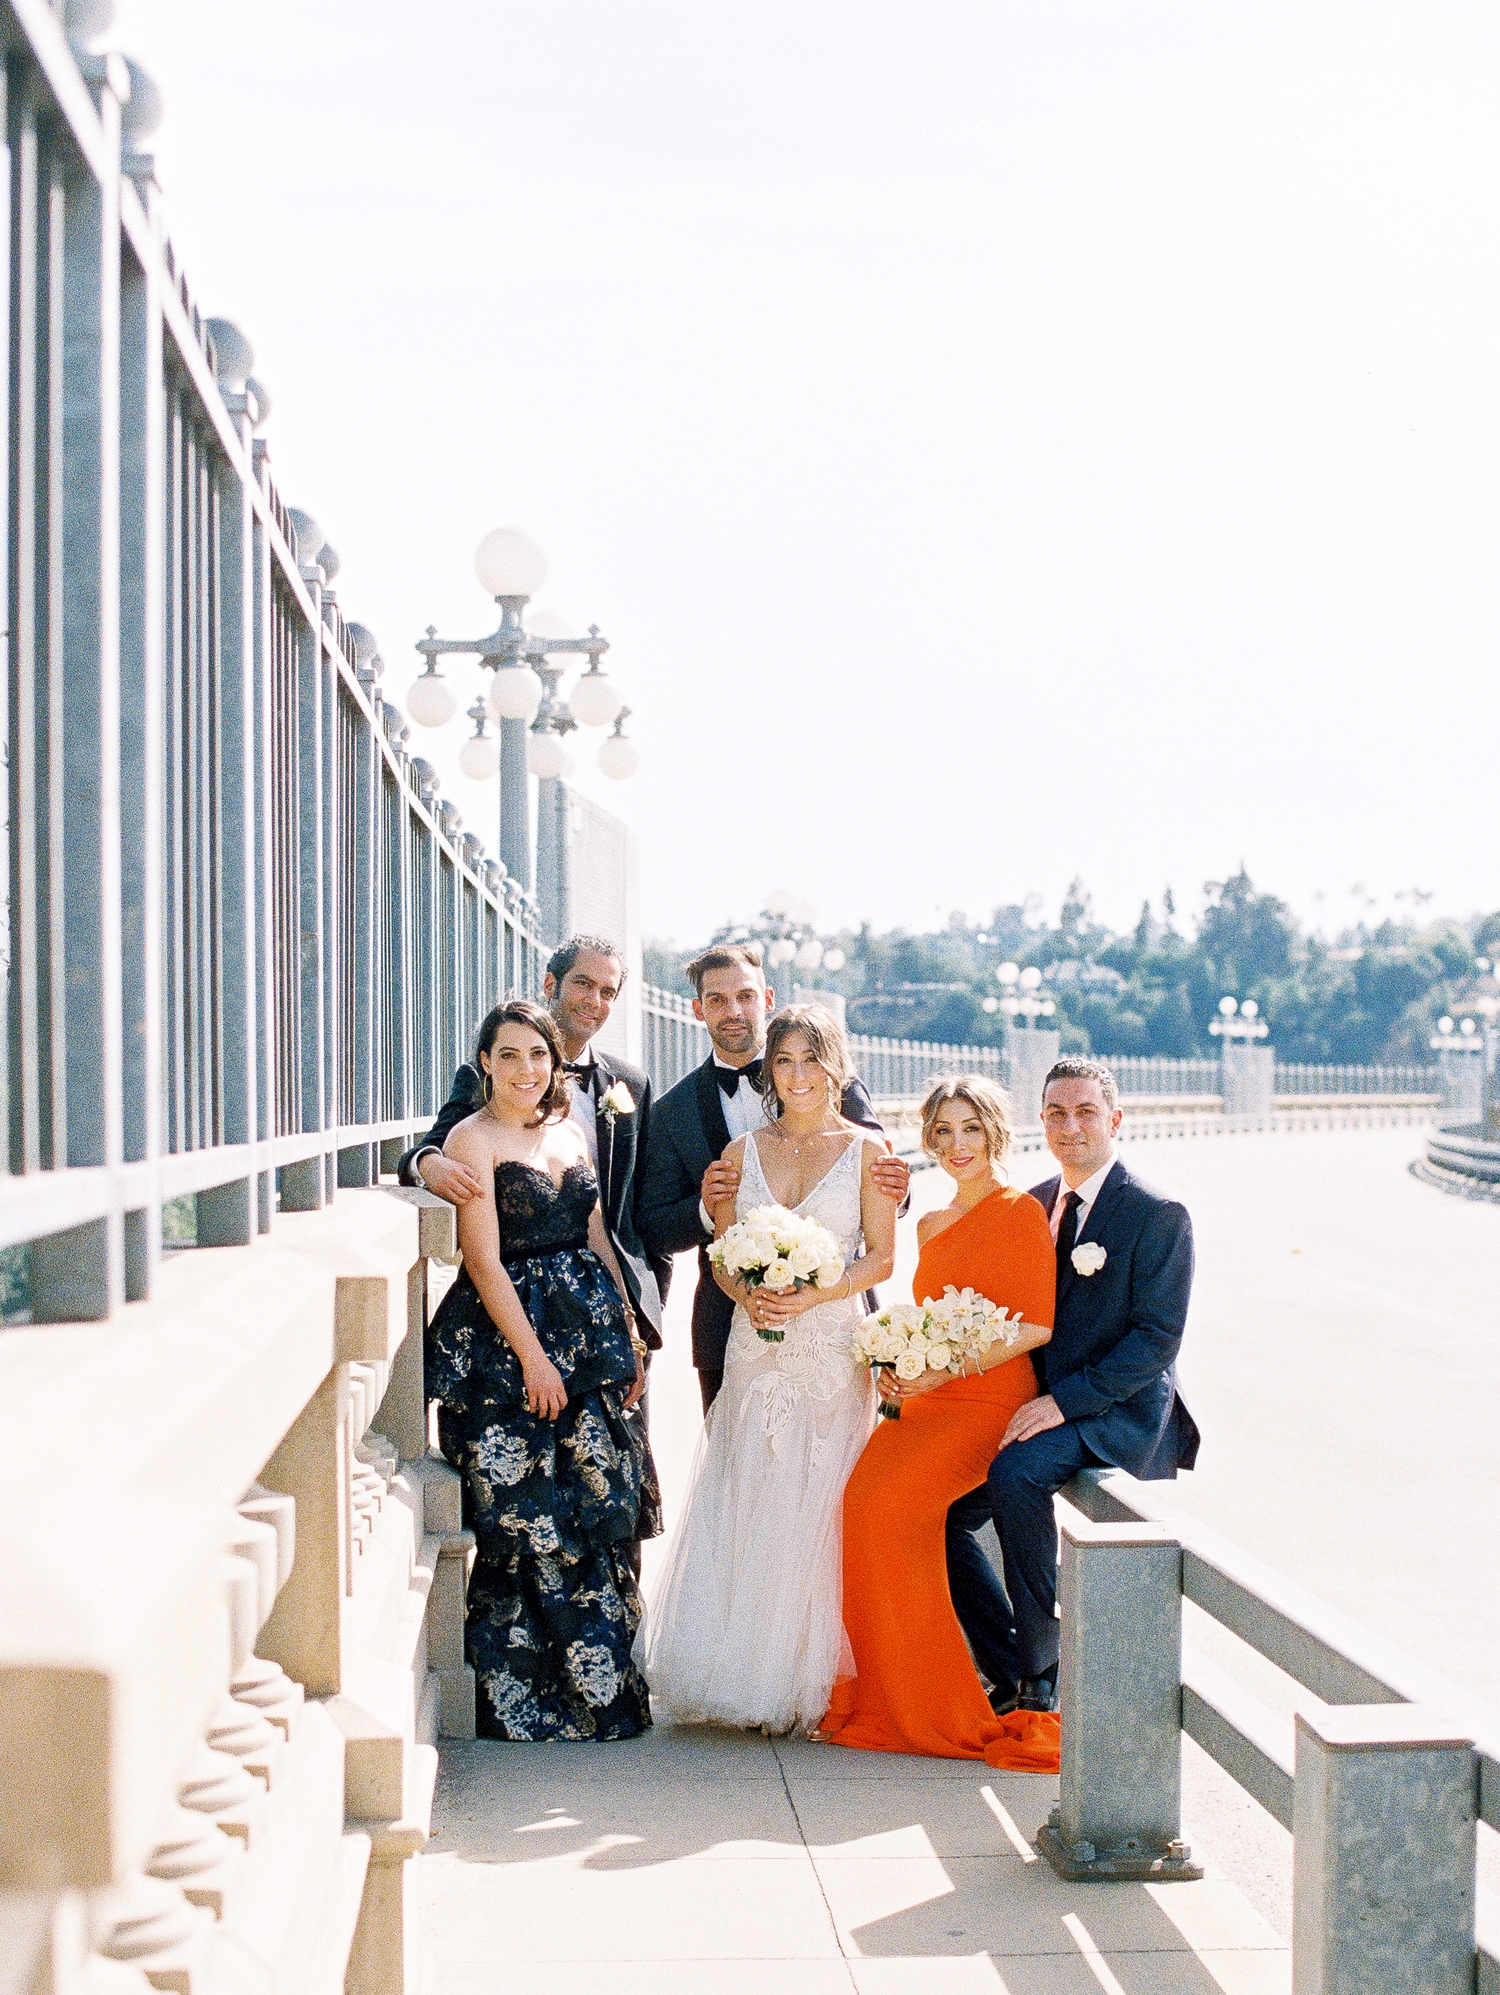 wedding union station los angeles arda tro 9.jpg